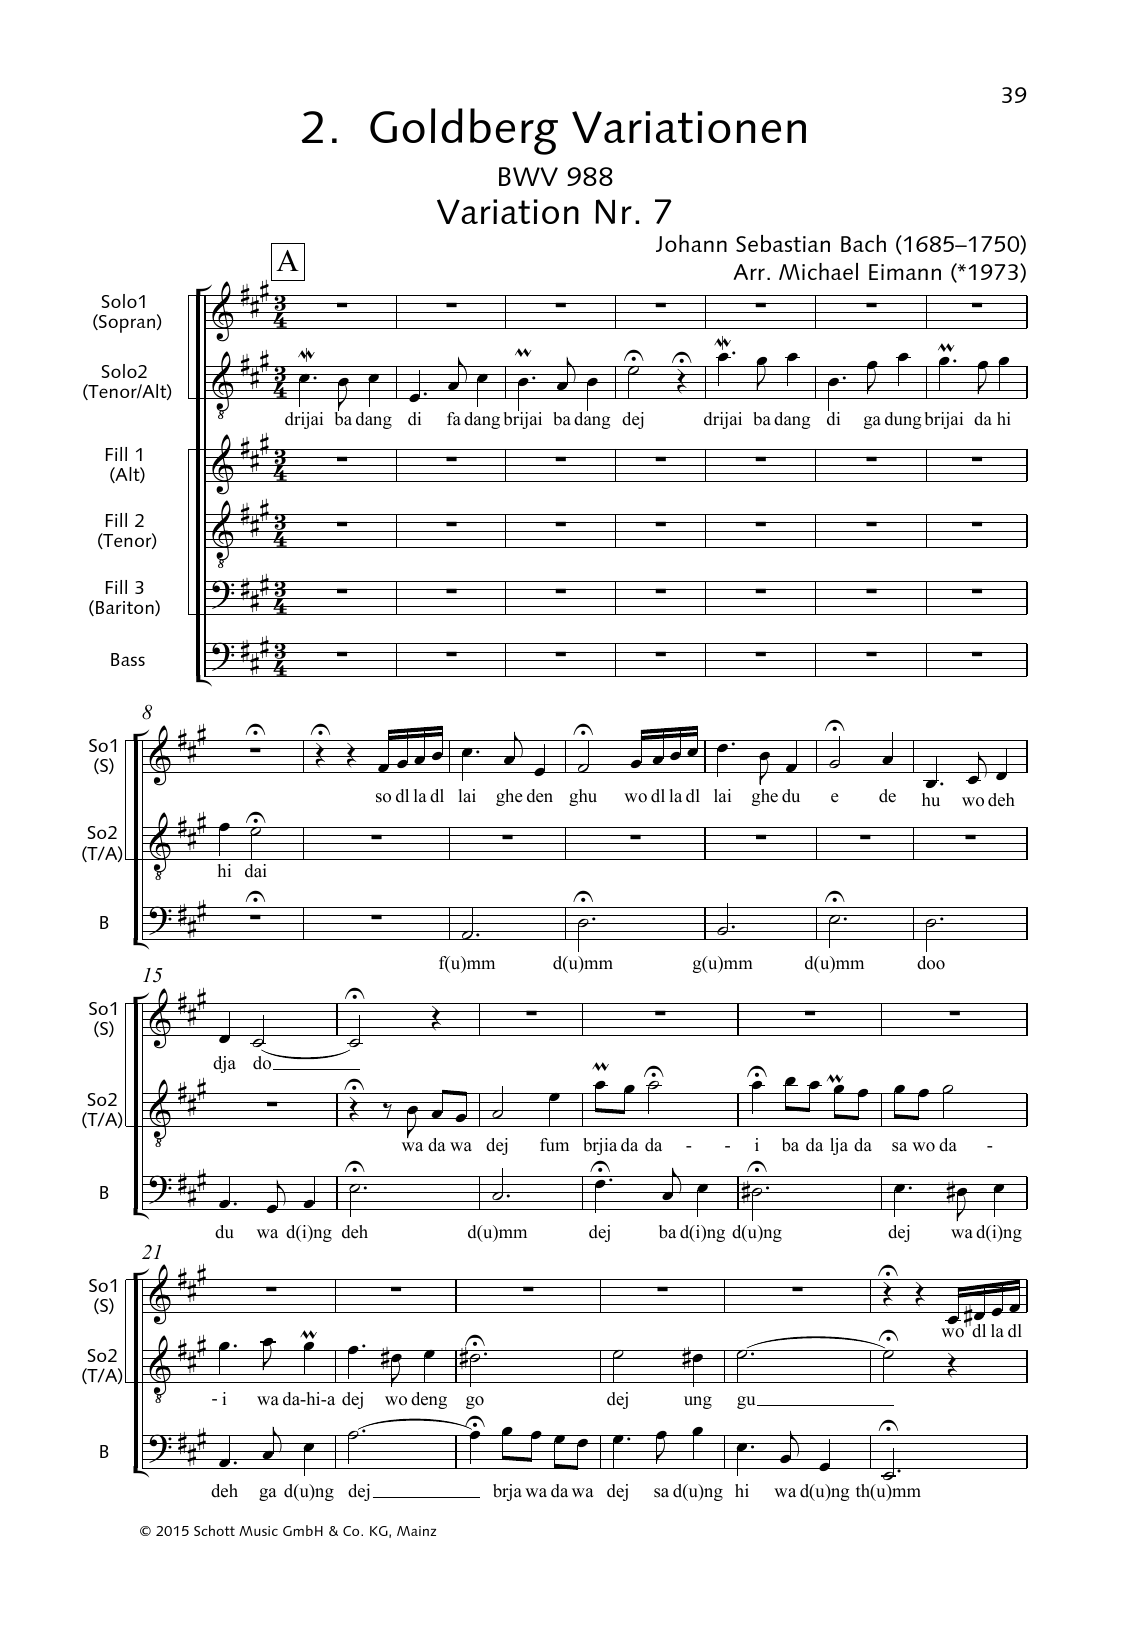 Goldberg Variations, Variation No. 7 Sheet Music